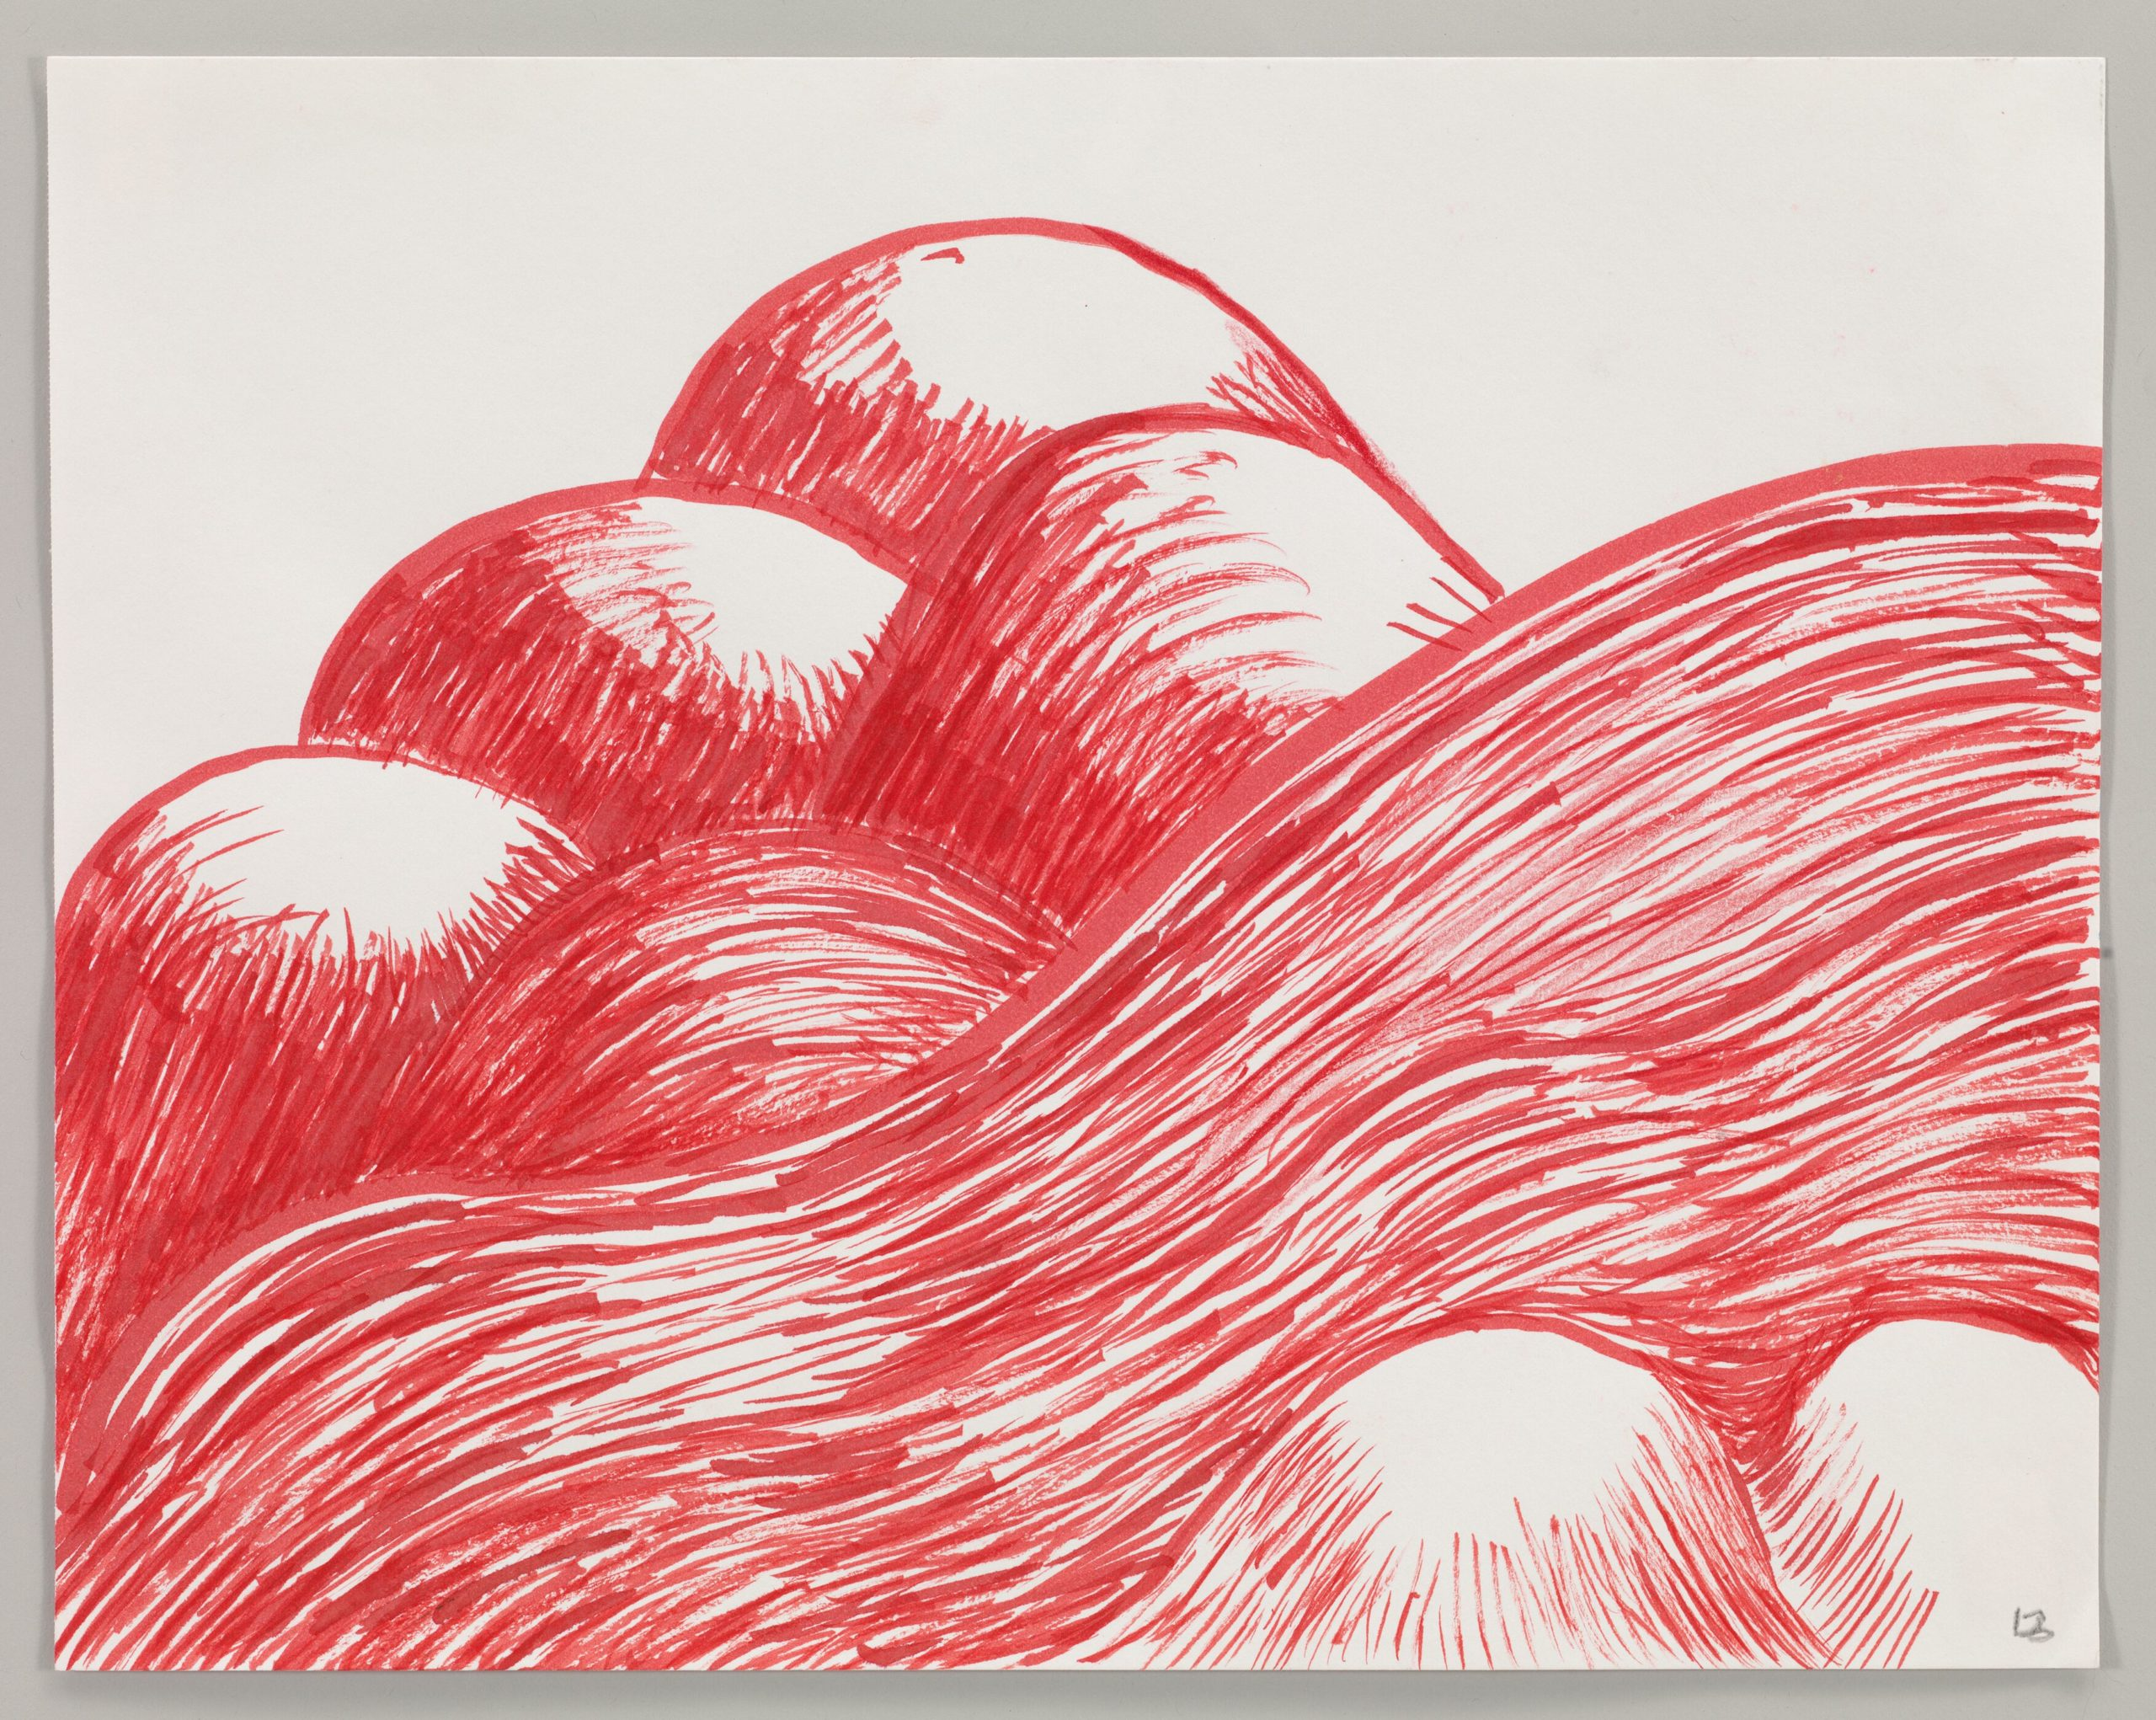 Louise Bourgeois  Untitled 2003 Watercolor on paper 22.9 x 28.9 cm / 9 x 11 3/8 in Photo: Christopher Burke © The Easton Foundation / 2020, ProLitteris, Zurich Courtesy The Easton Foundation and Hauser & Wirth